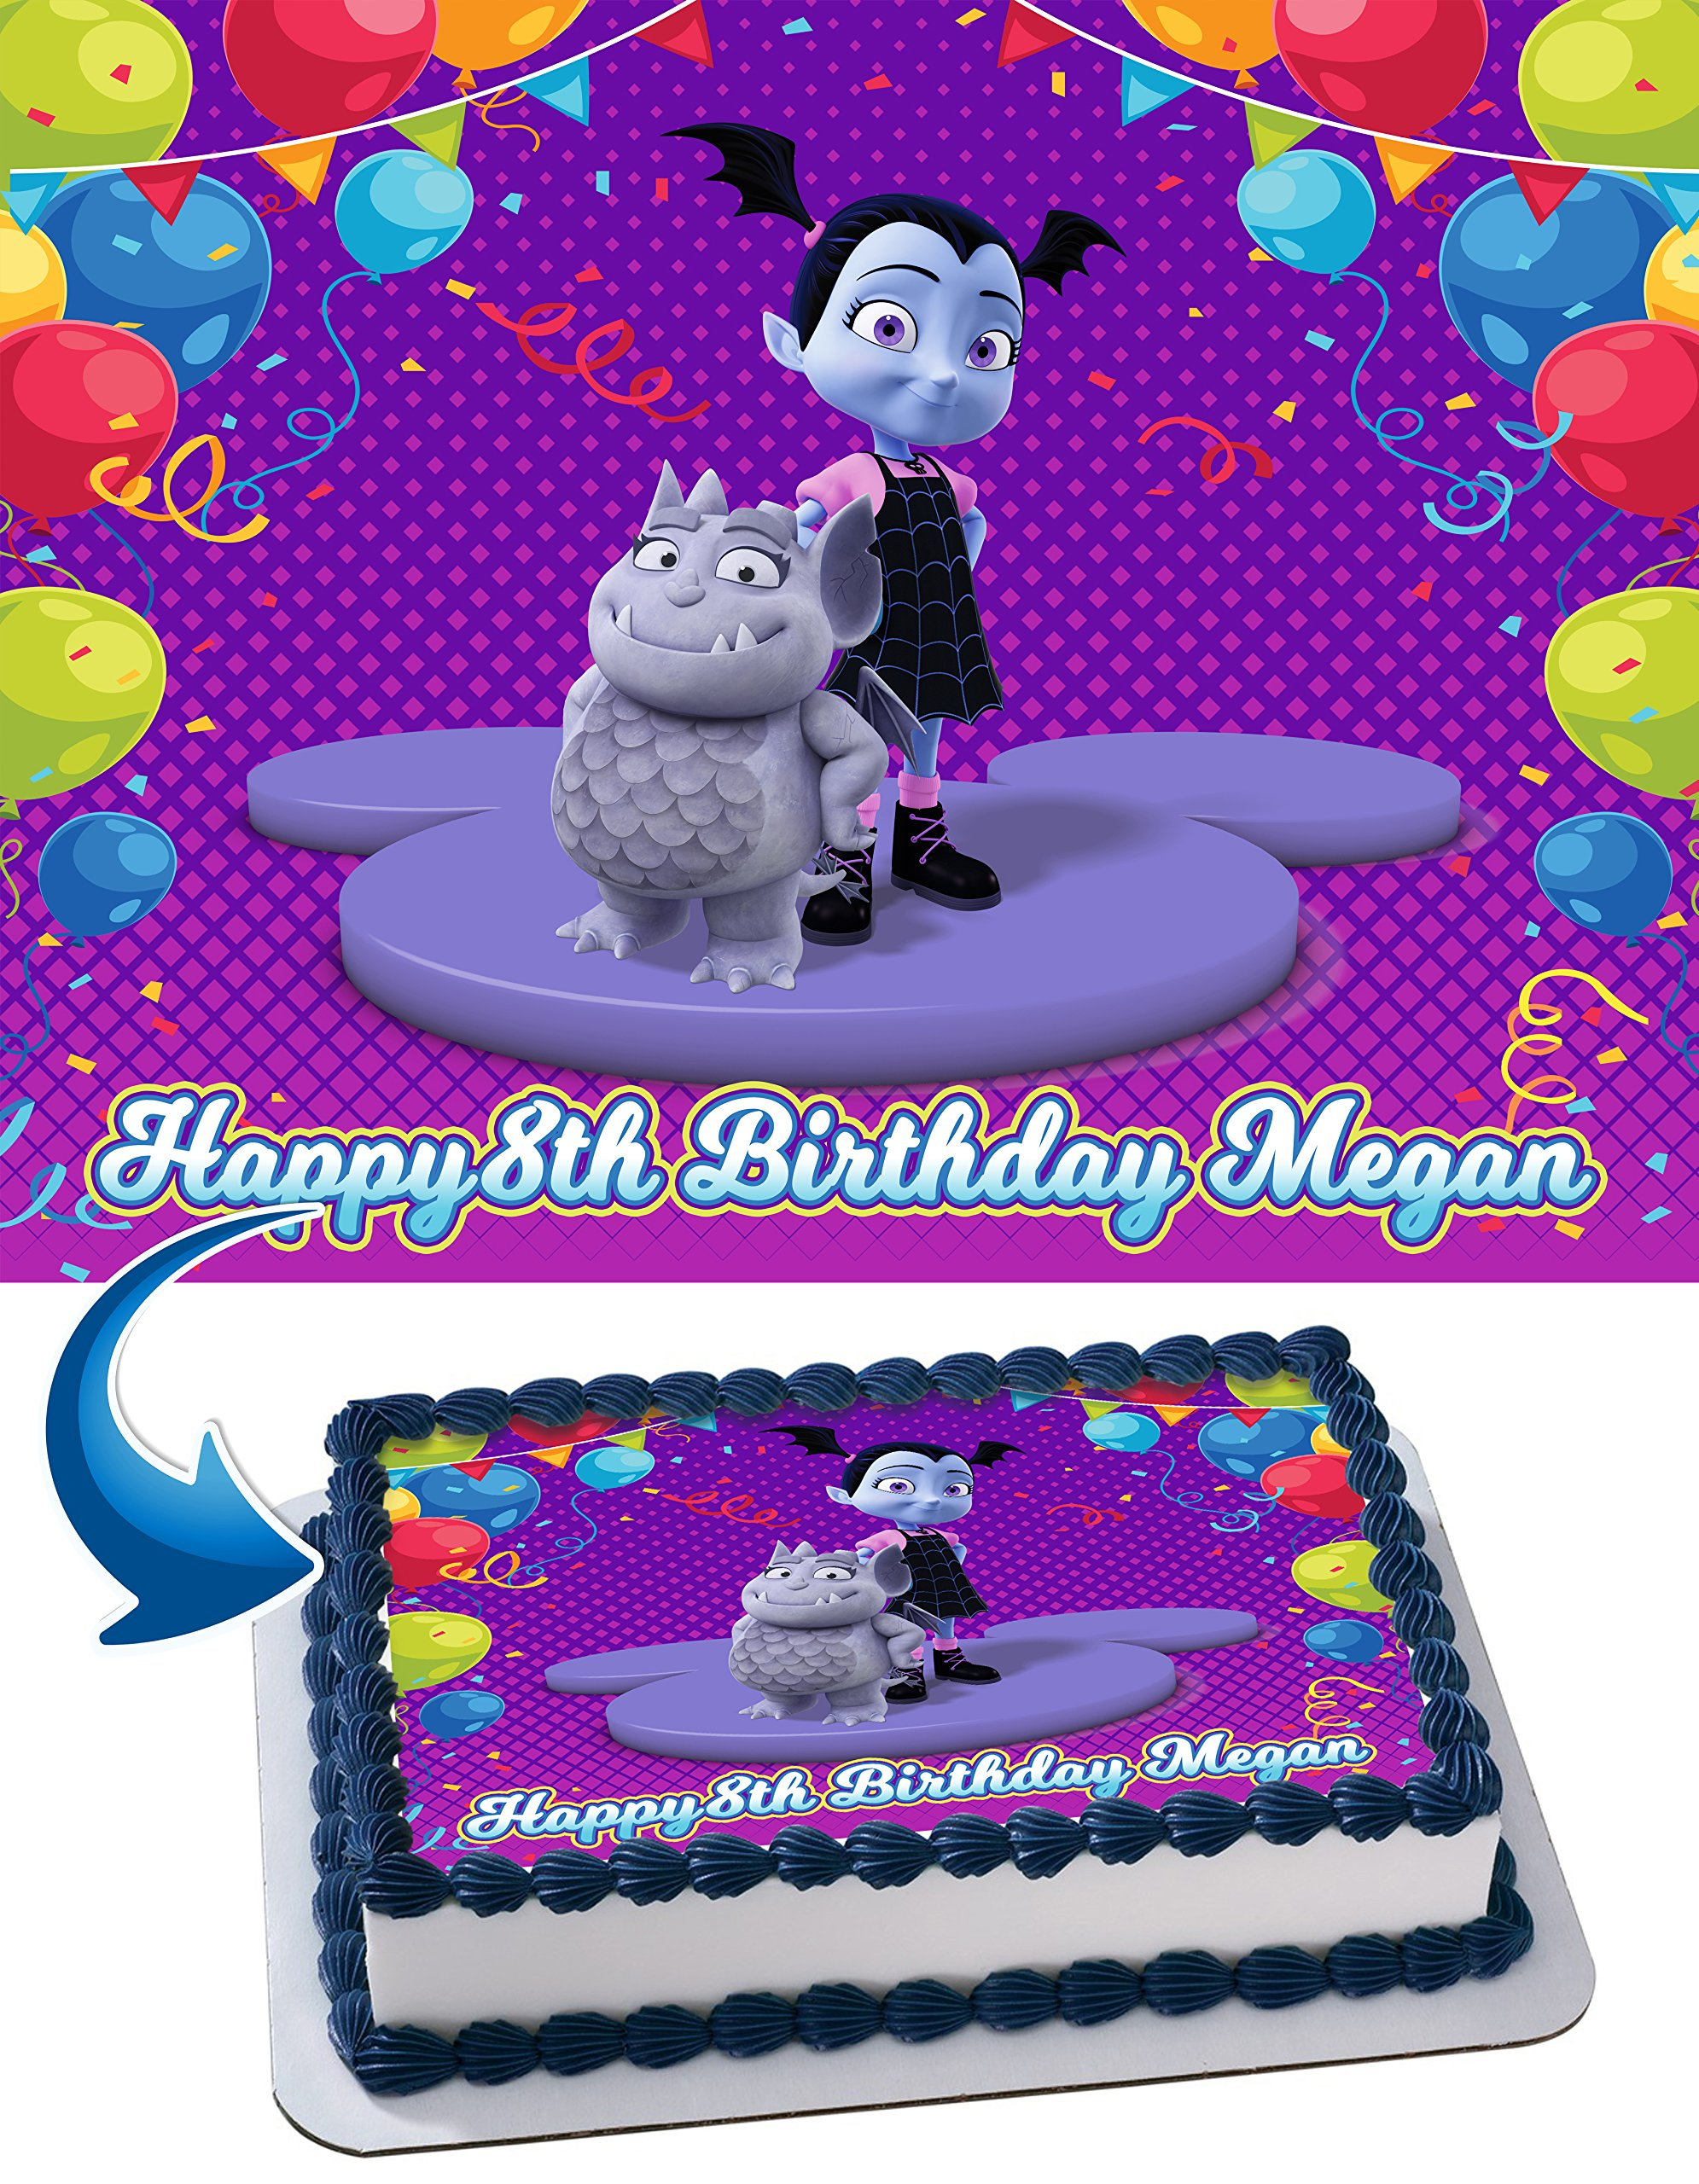 ea098c6cc5af Get Quotations · Vampirina Birthday Cake Personalized Cake Toppers Edible  Frosting Photo Icing Sugar Paper A4 Sheet 1